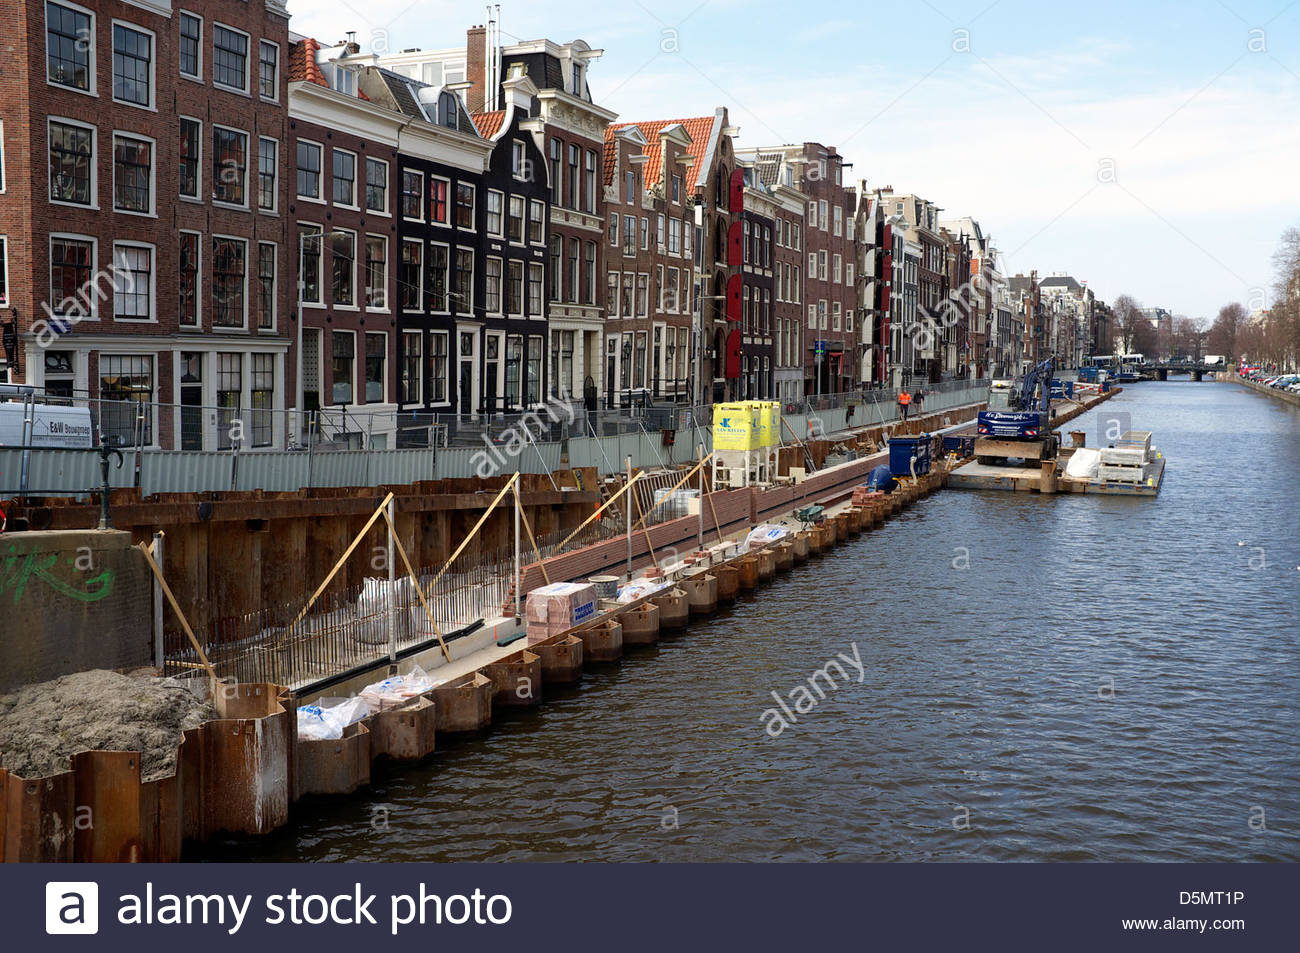 Canal side reconstruction works, in Amsterdam, the Netherlands. - Stock Image